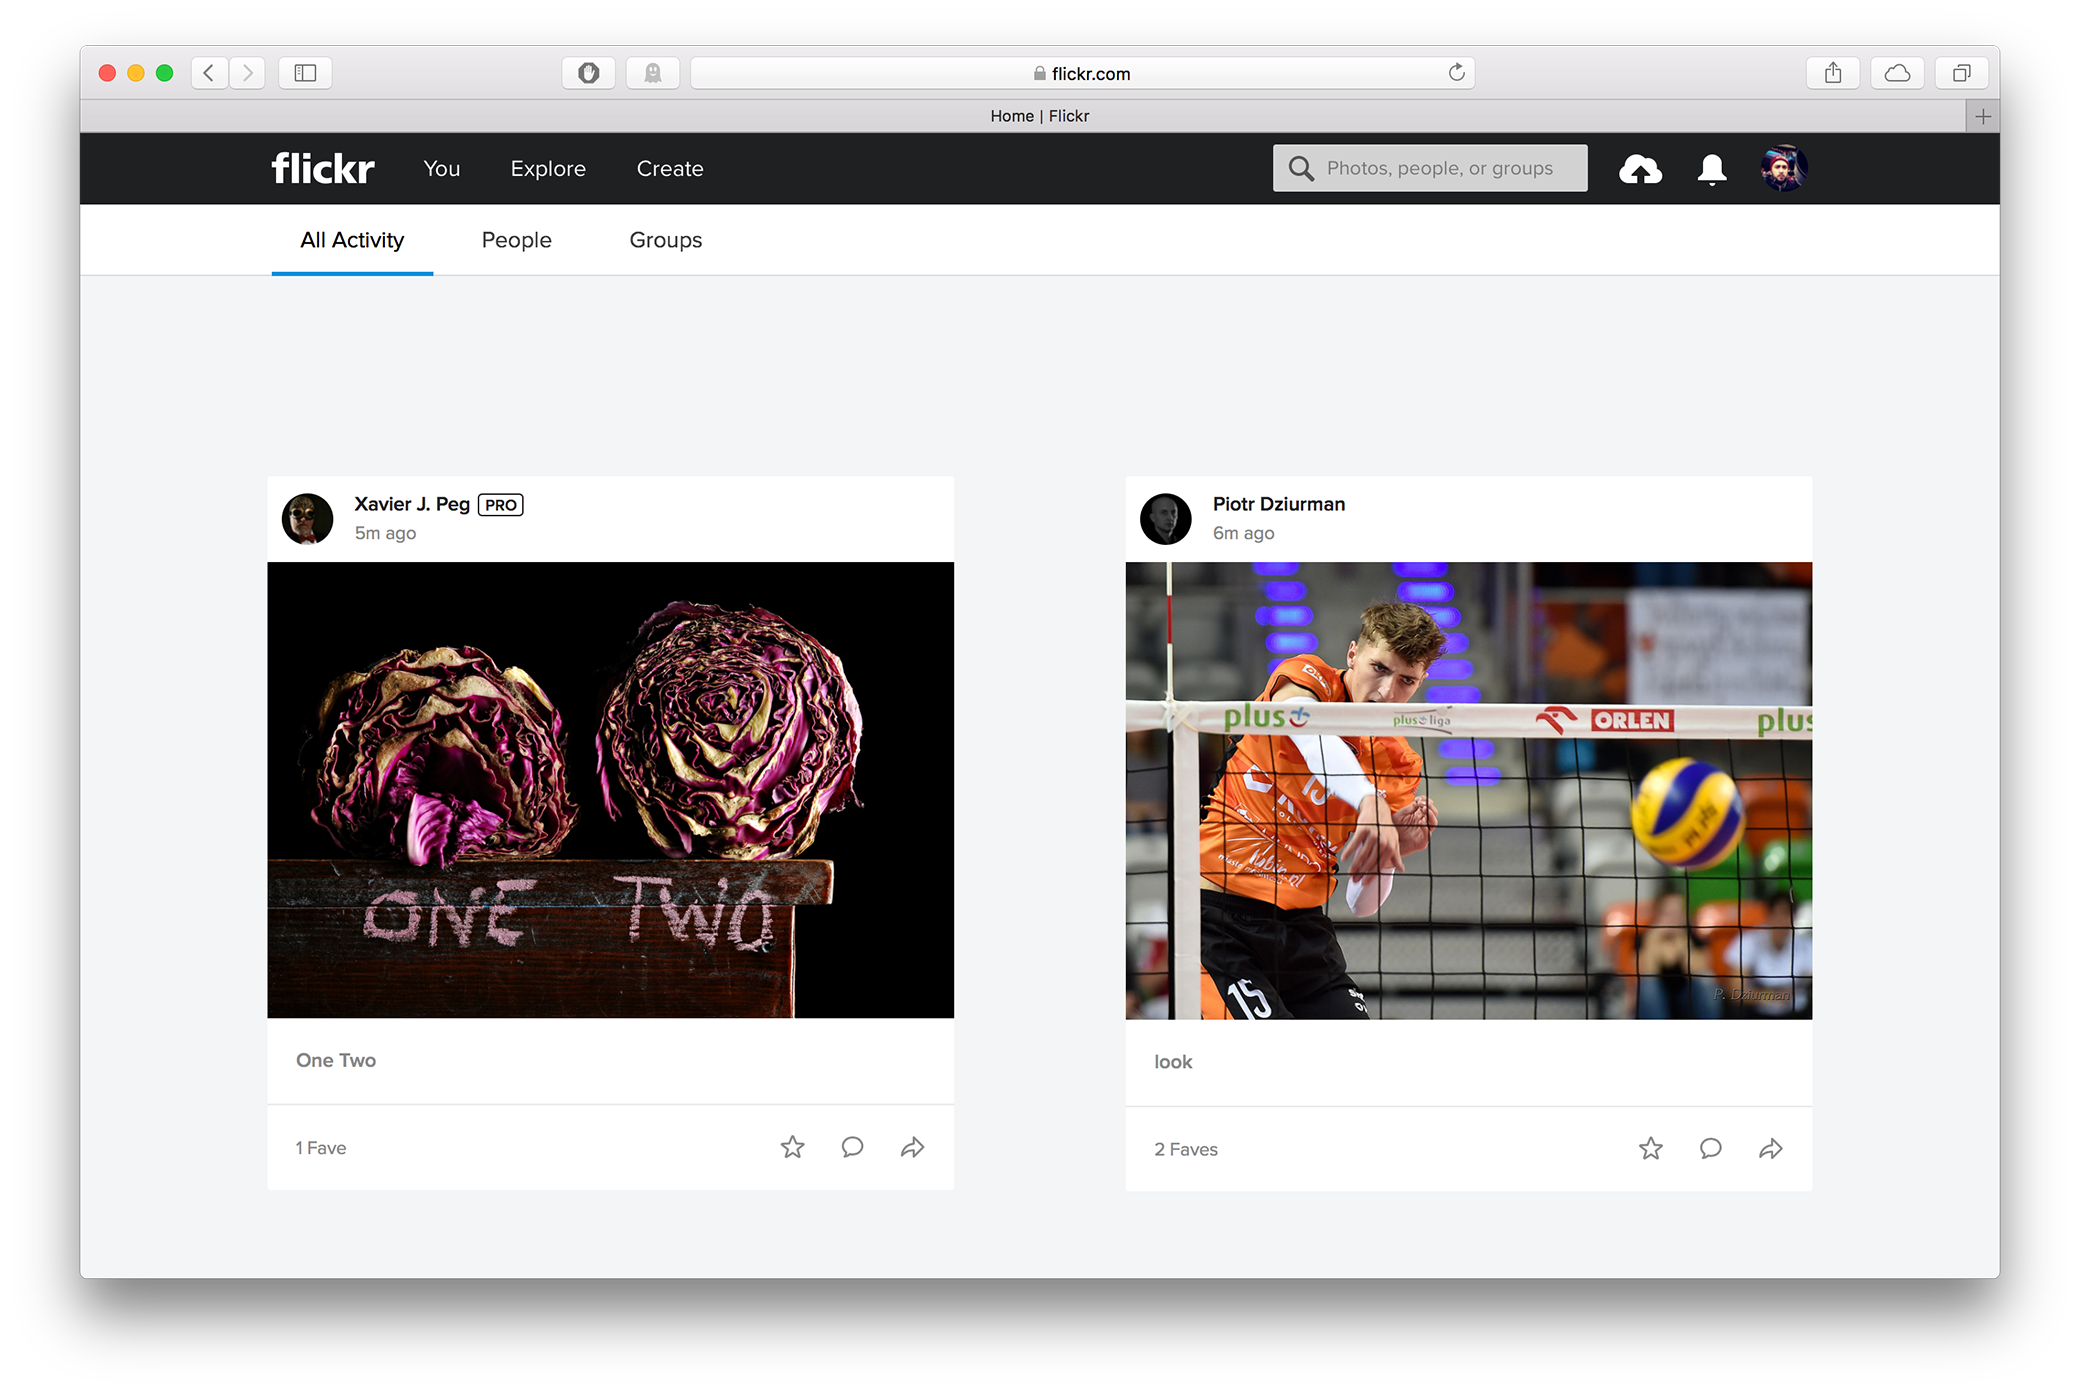 The new feed on Flickr